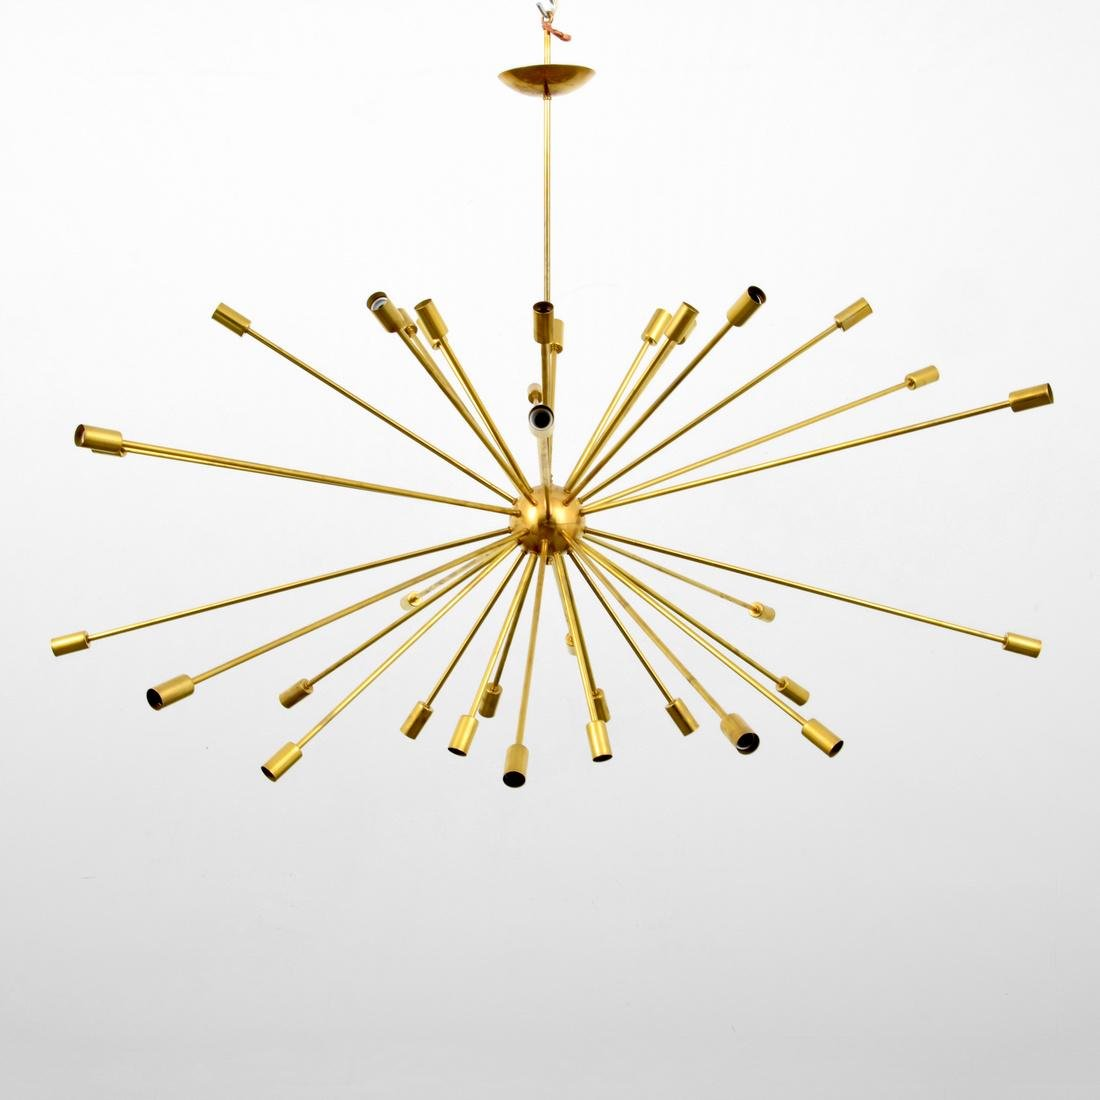 Large Sputnik Chandelier, Manner of Gino Sarfatti